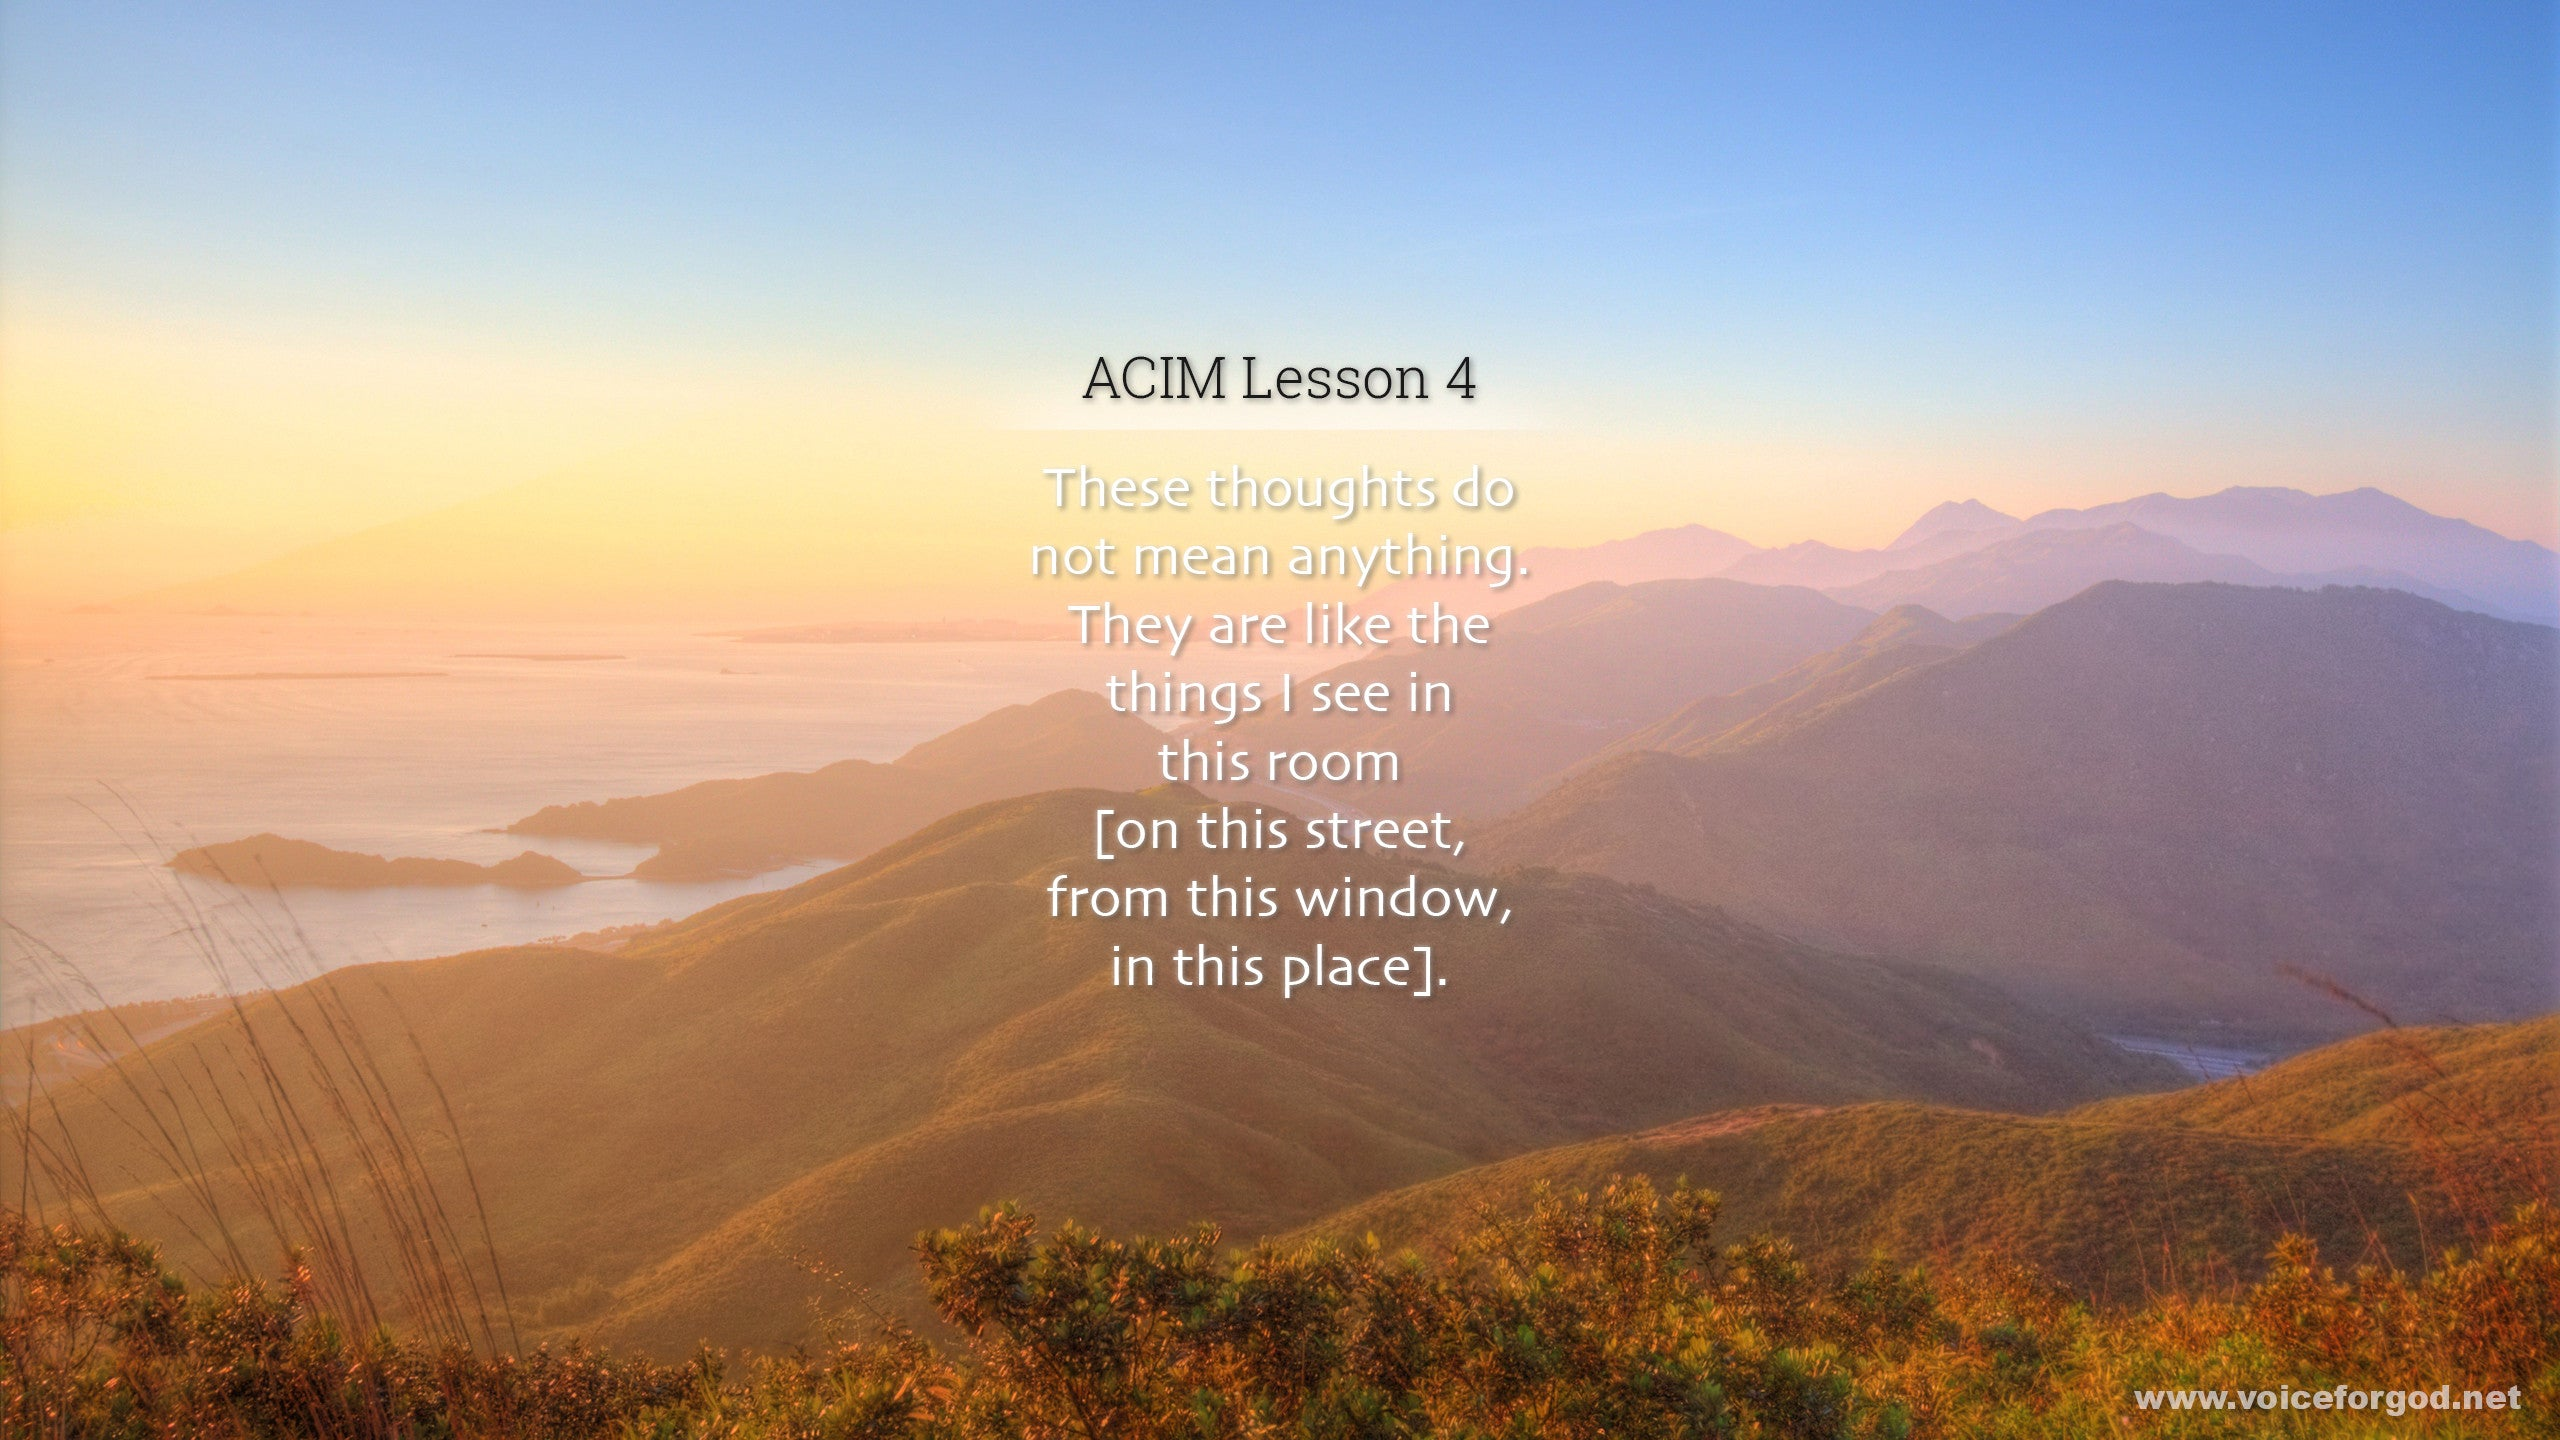 ACIM Lesson 4 - A Course in Miracles Workbook Lesson 4